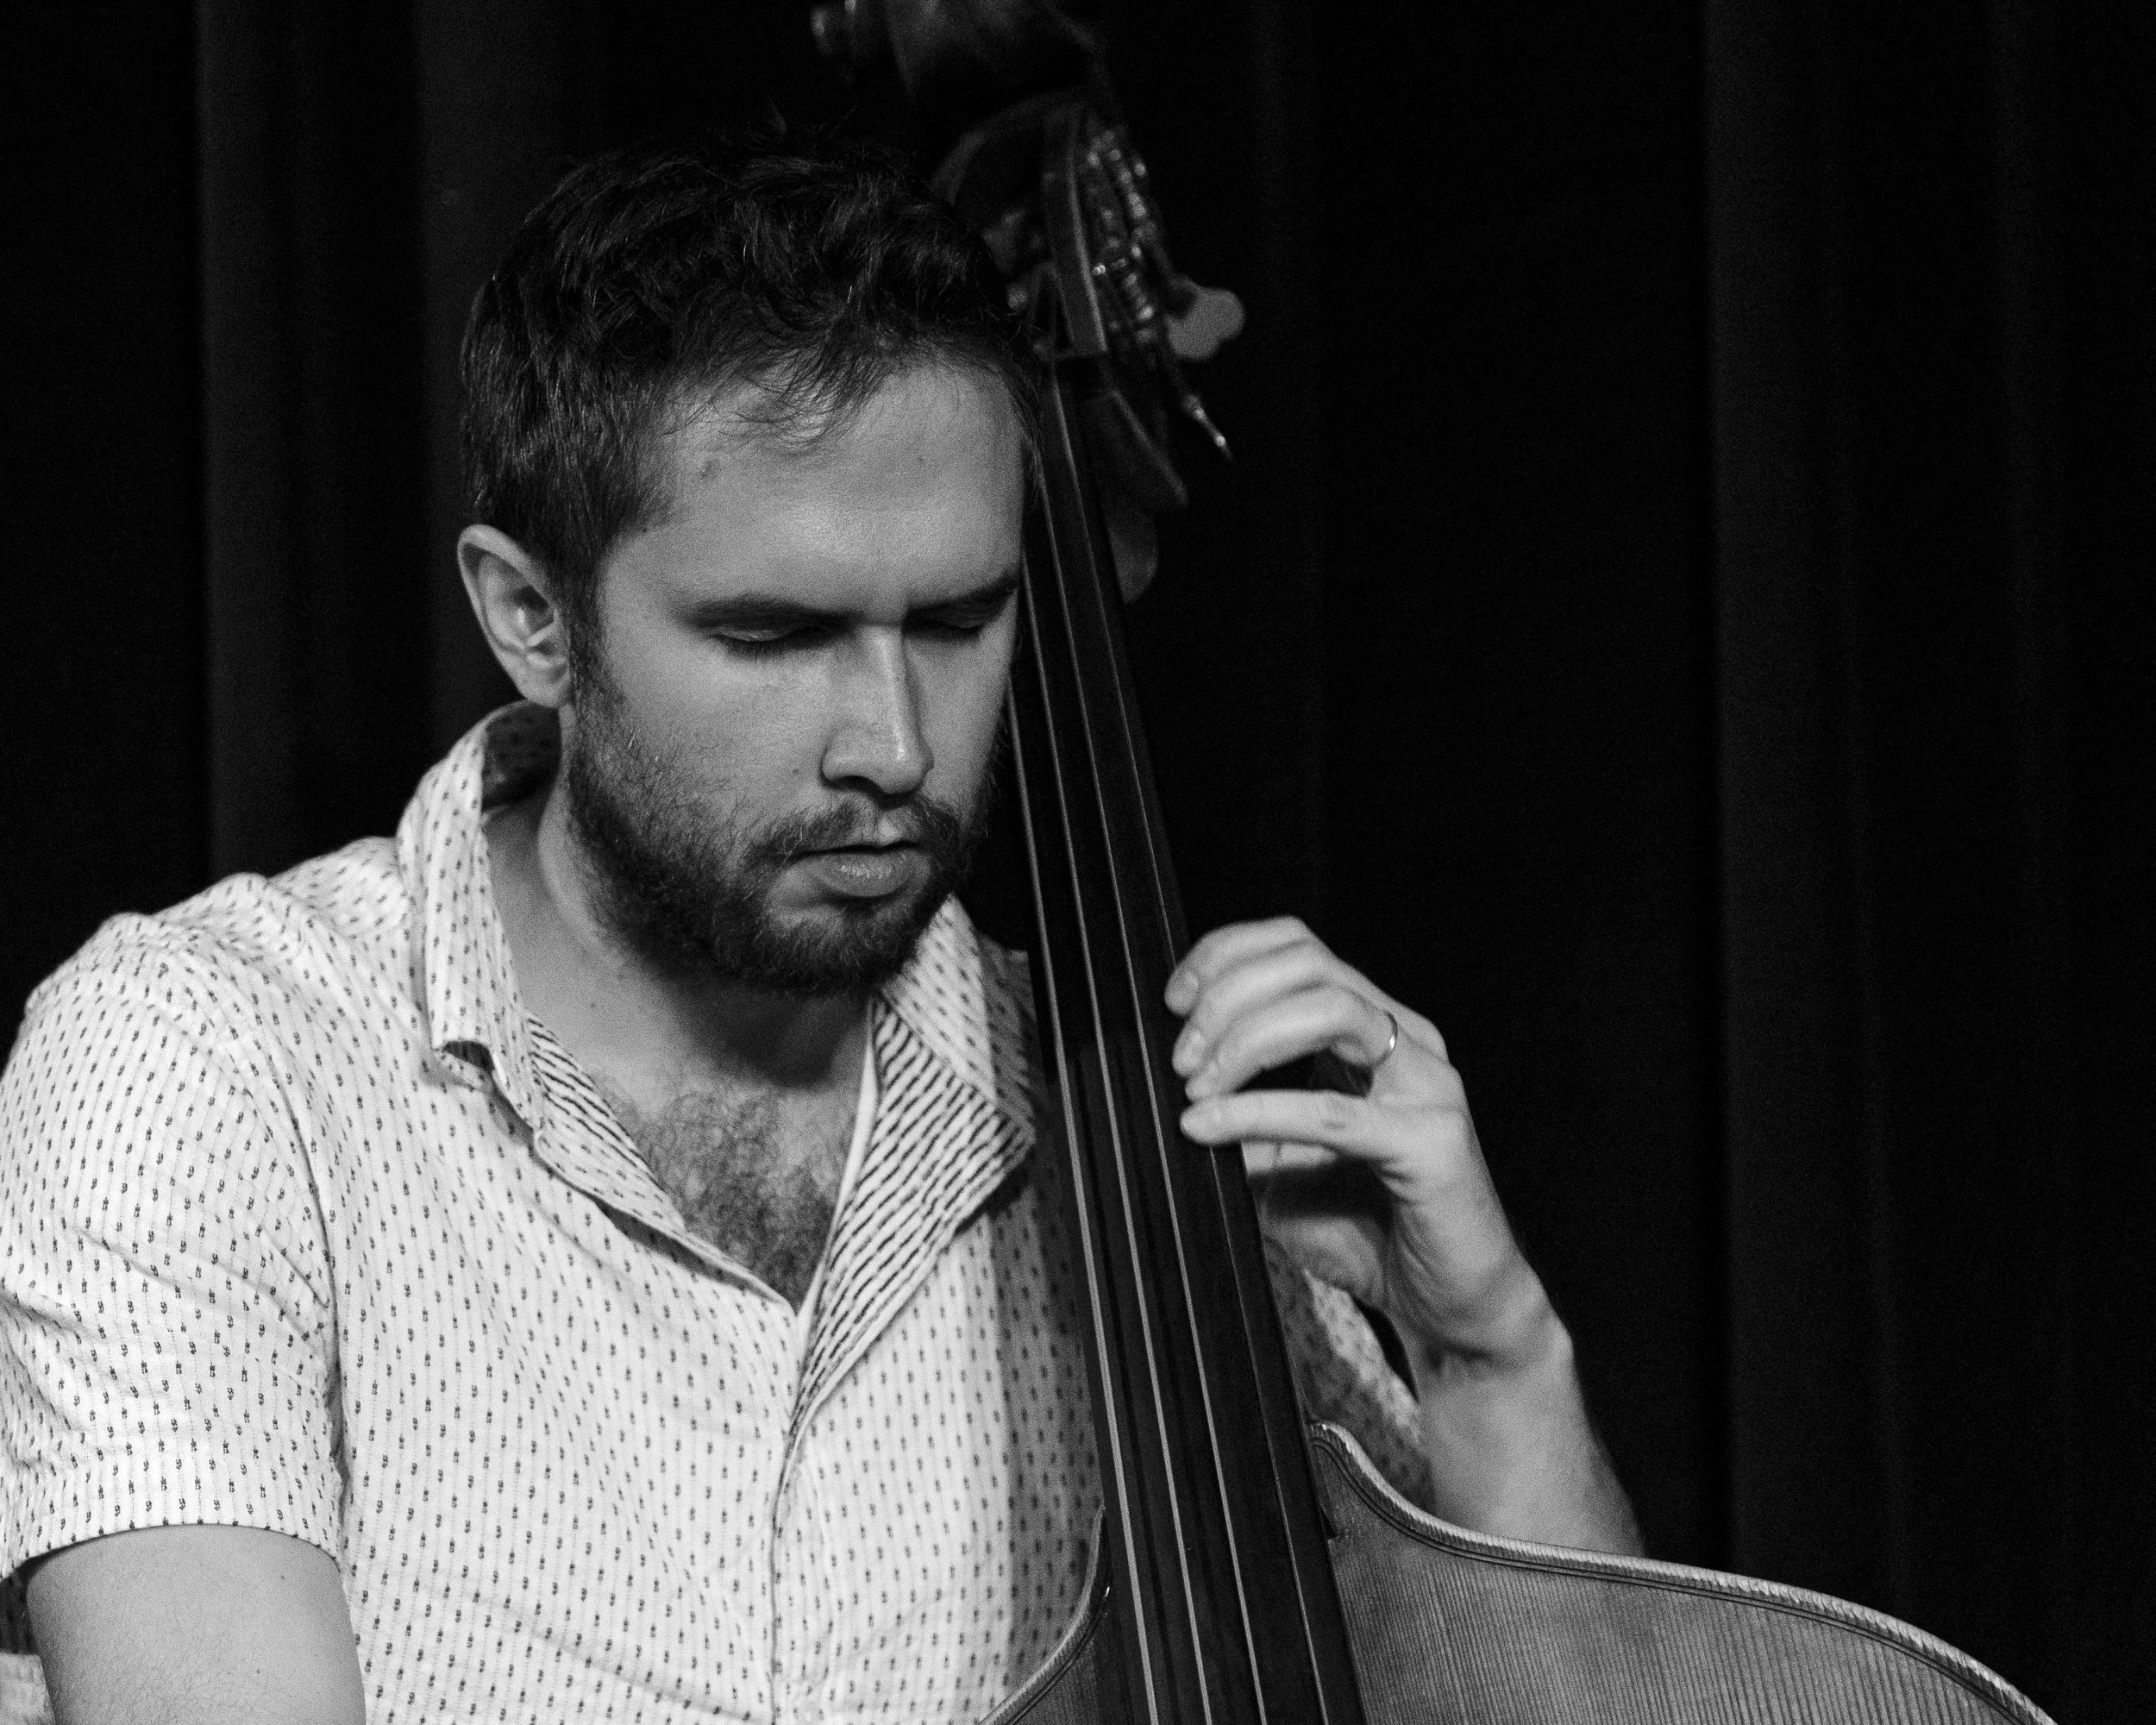 Ben Hedquist on bass with Union 32 playing scandinavian jazz